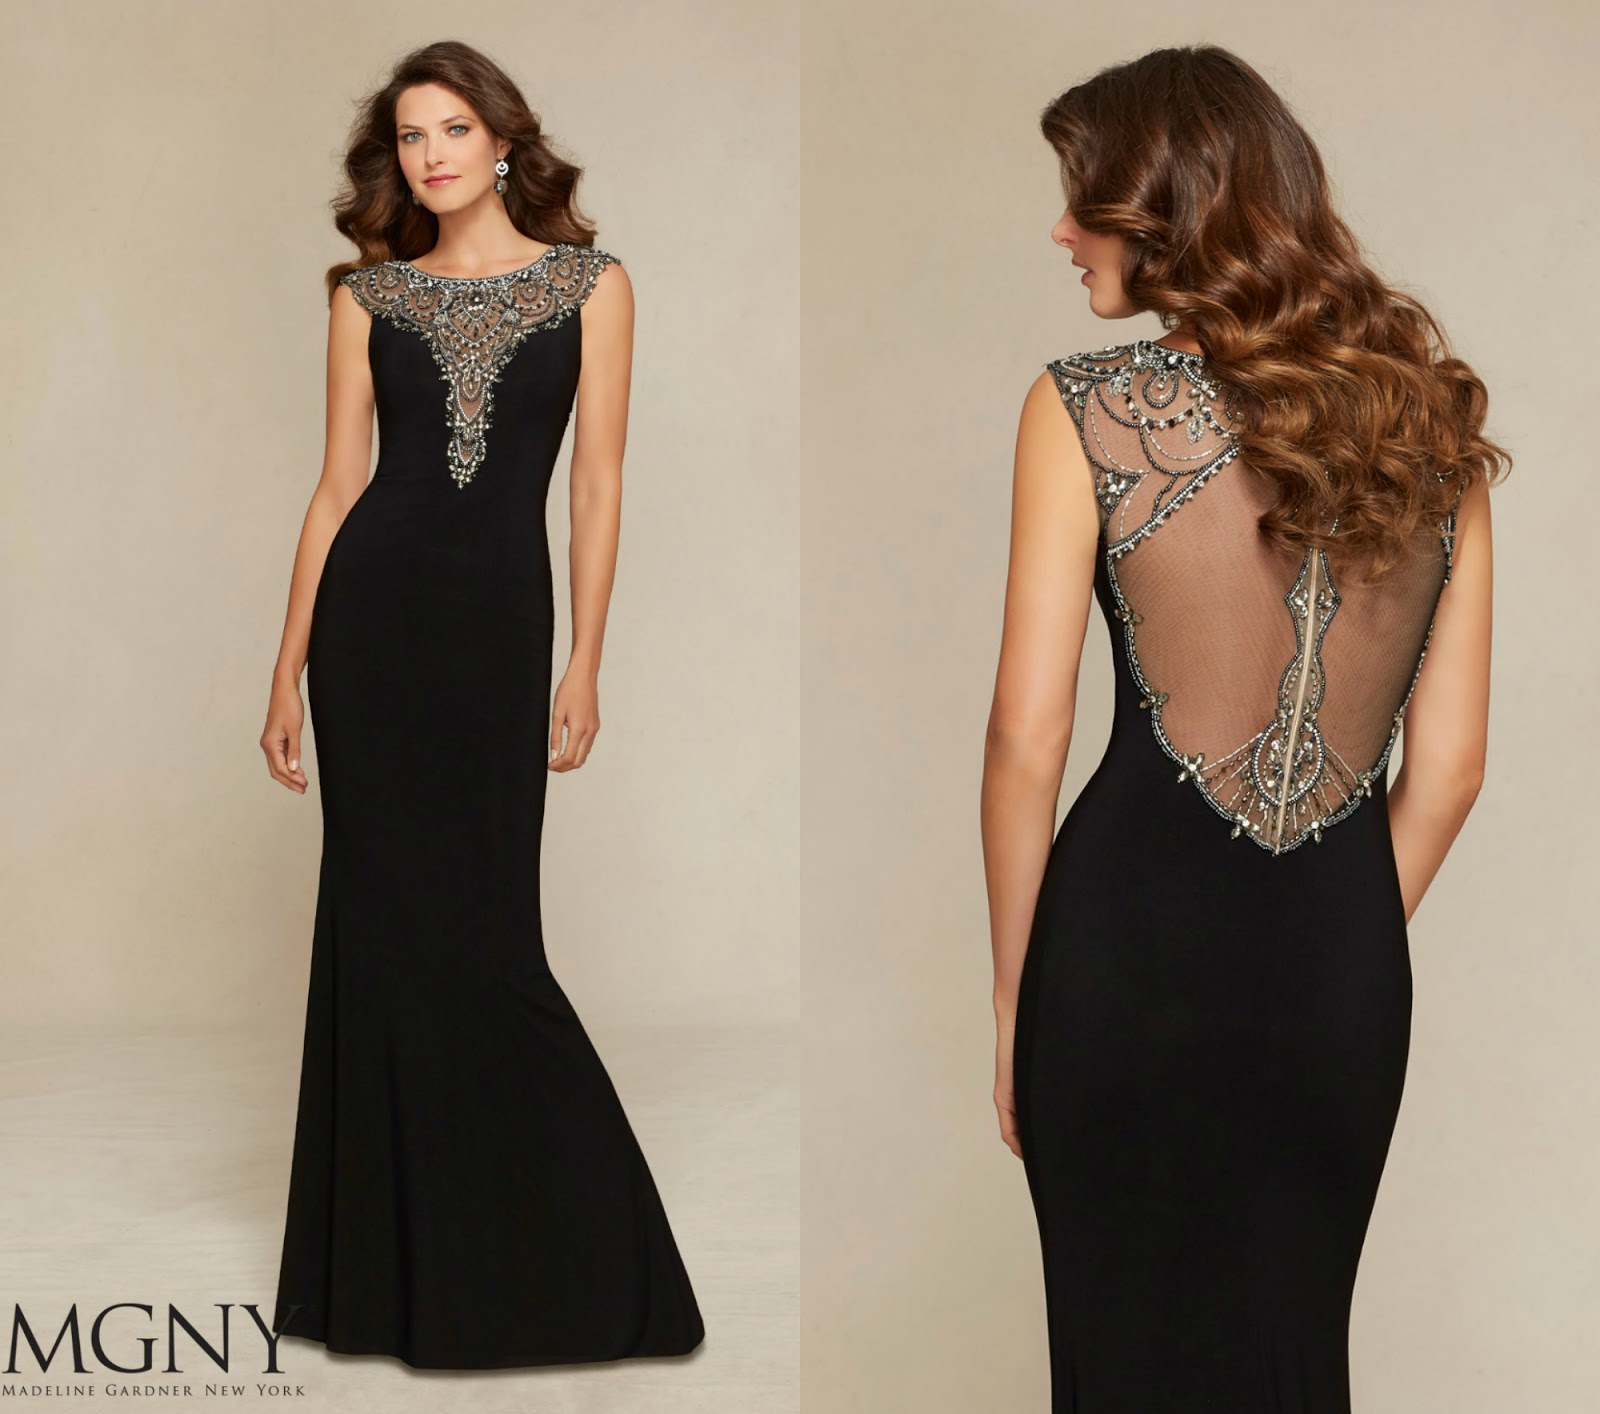 Stunning Mother Of The Bride Dresses: Brides Of America Online Store: The Beautiful Mother Of